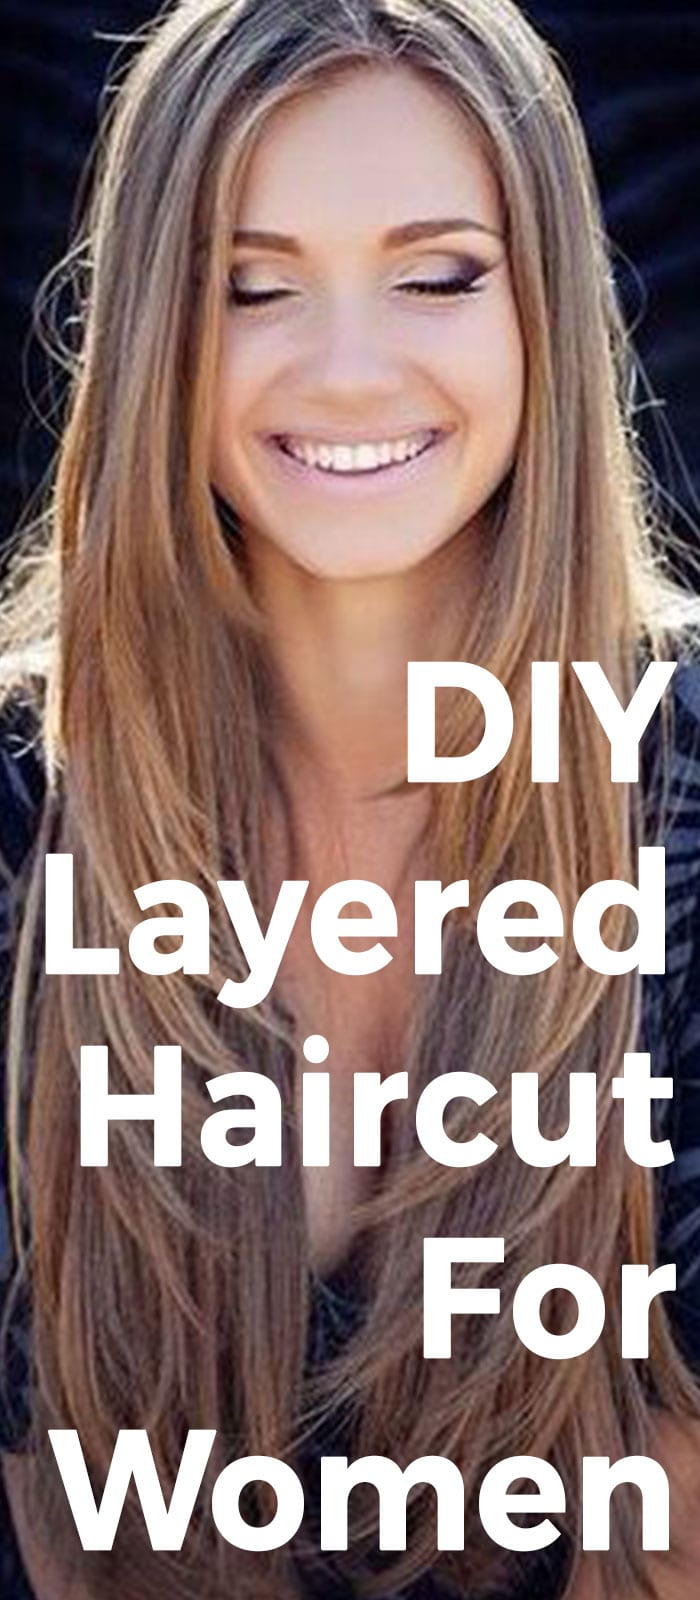 DIY Layered Haircut For Women